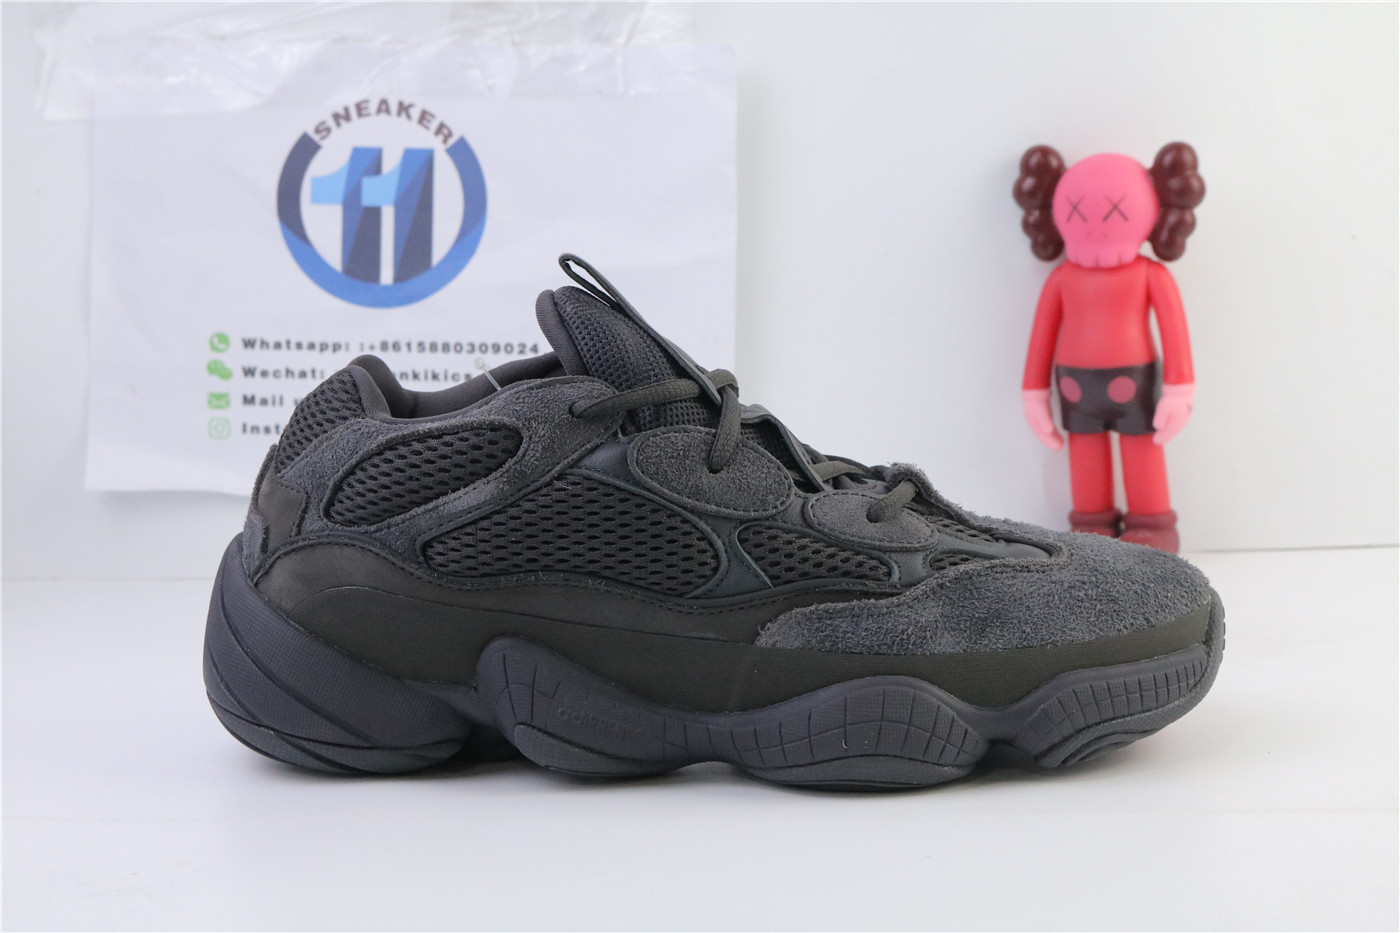 Adidas Yeezy 500 Utility Black,All Products : Eleven Kicks, Eleven Kicks